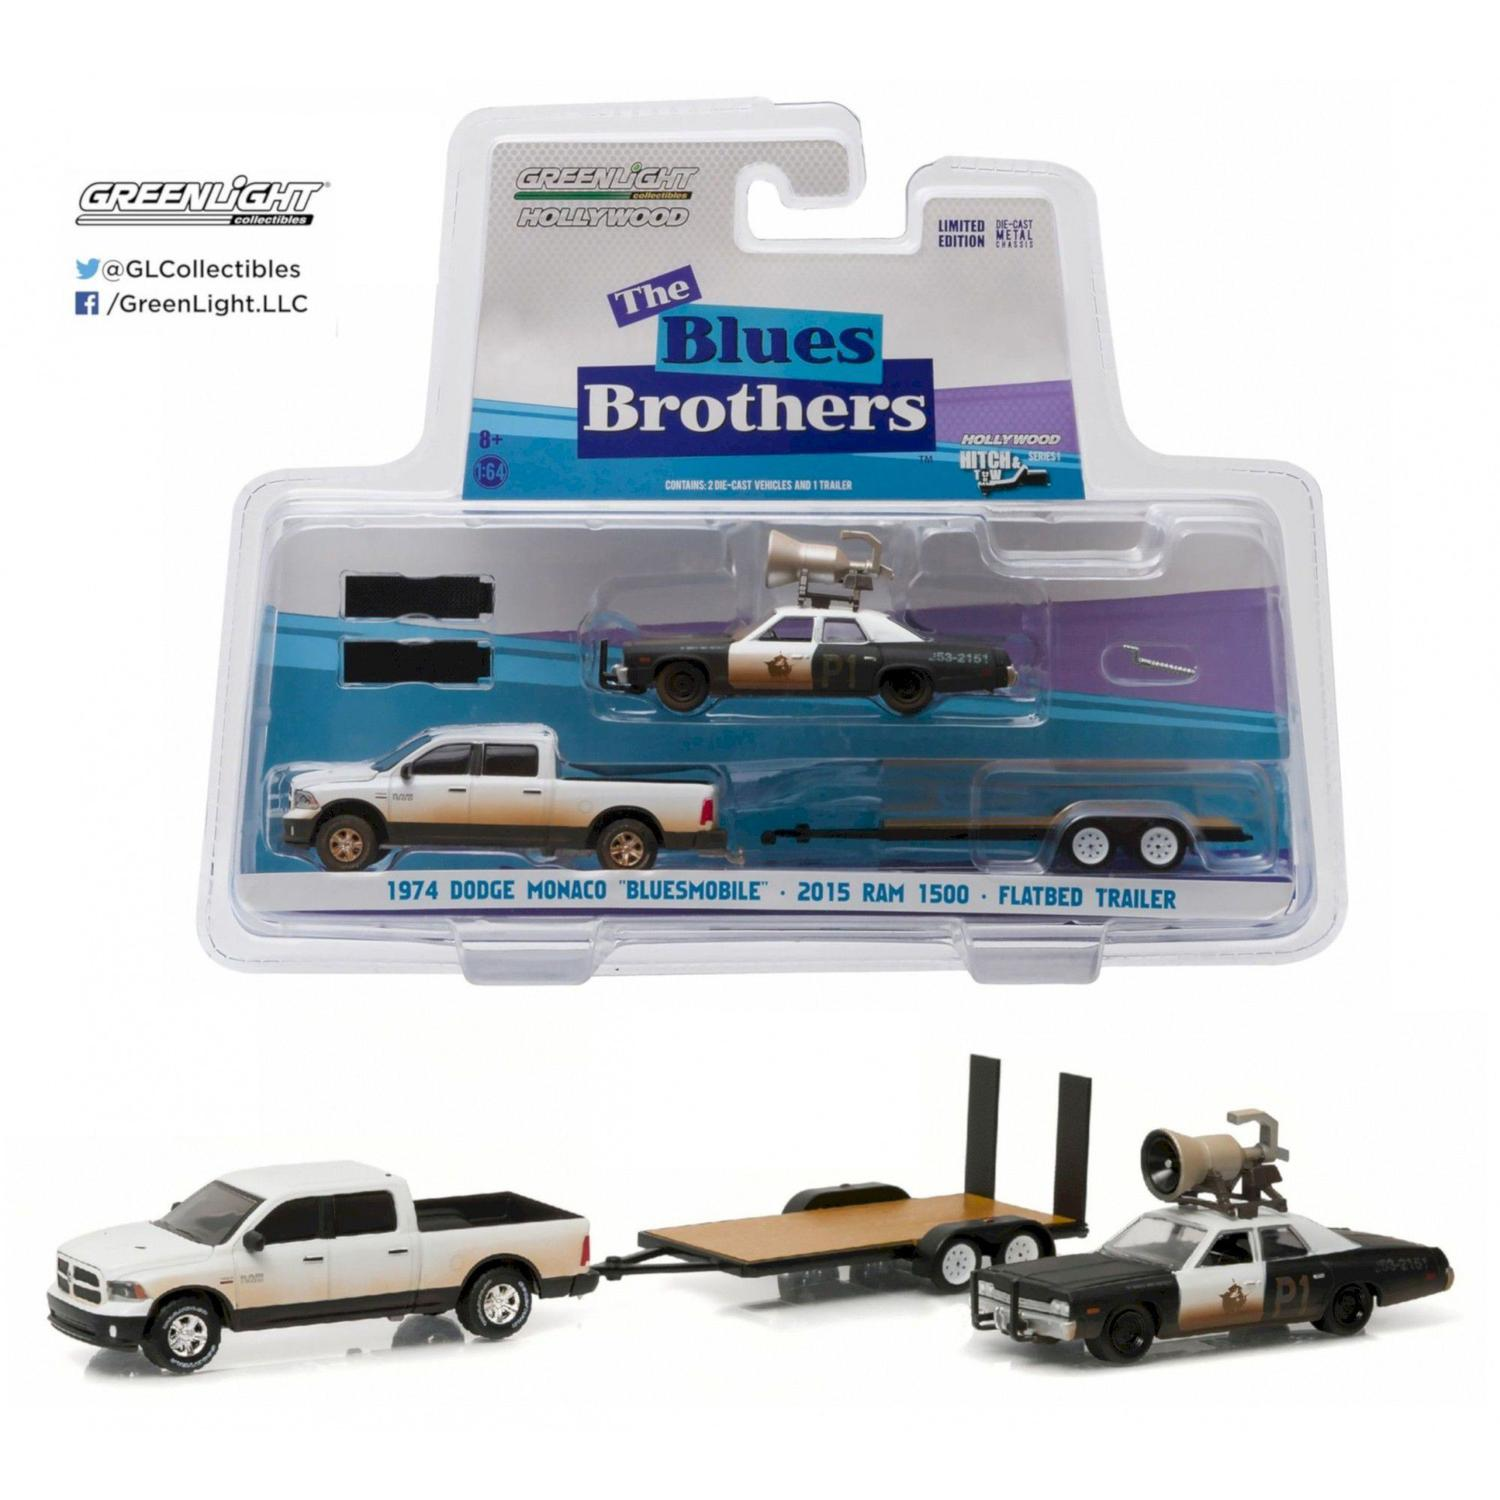 1974 Dodge Monaco Bluesmobile 2015 Ram 1500 Flatbed Trailer The Blue Brothers Hitch Tow Hollywood Serie 1 1 64 Greenlight Miniaturas De Carros Magazine Luiza